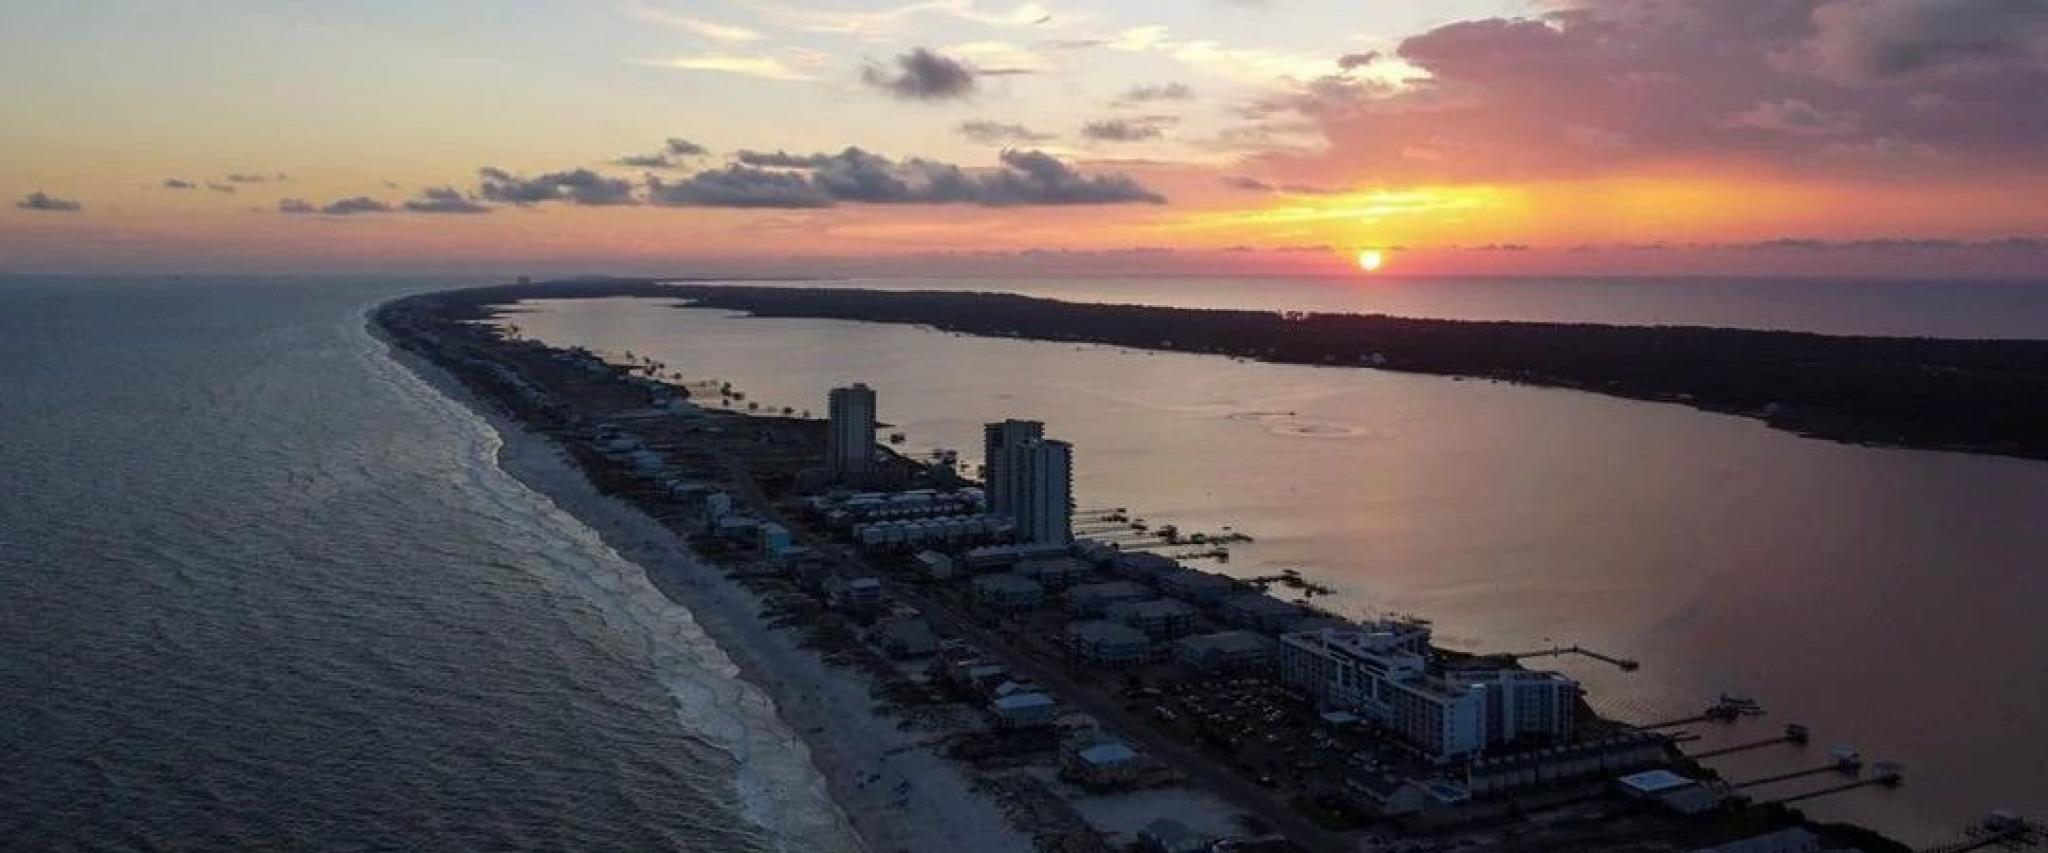 Aerial sunset in Orange Beach, AL